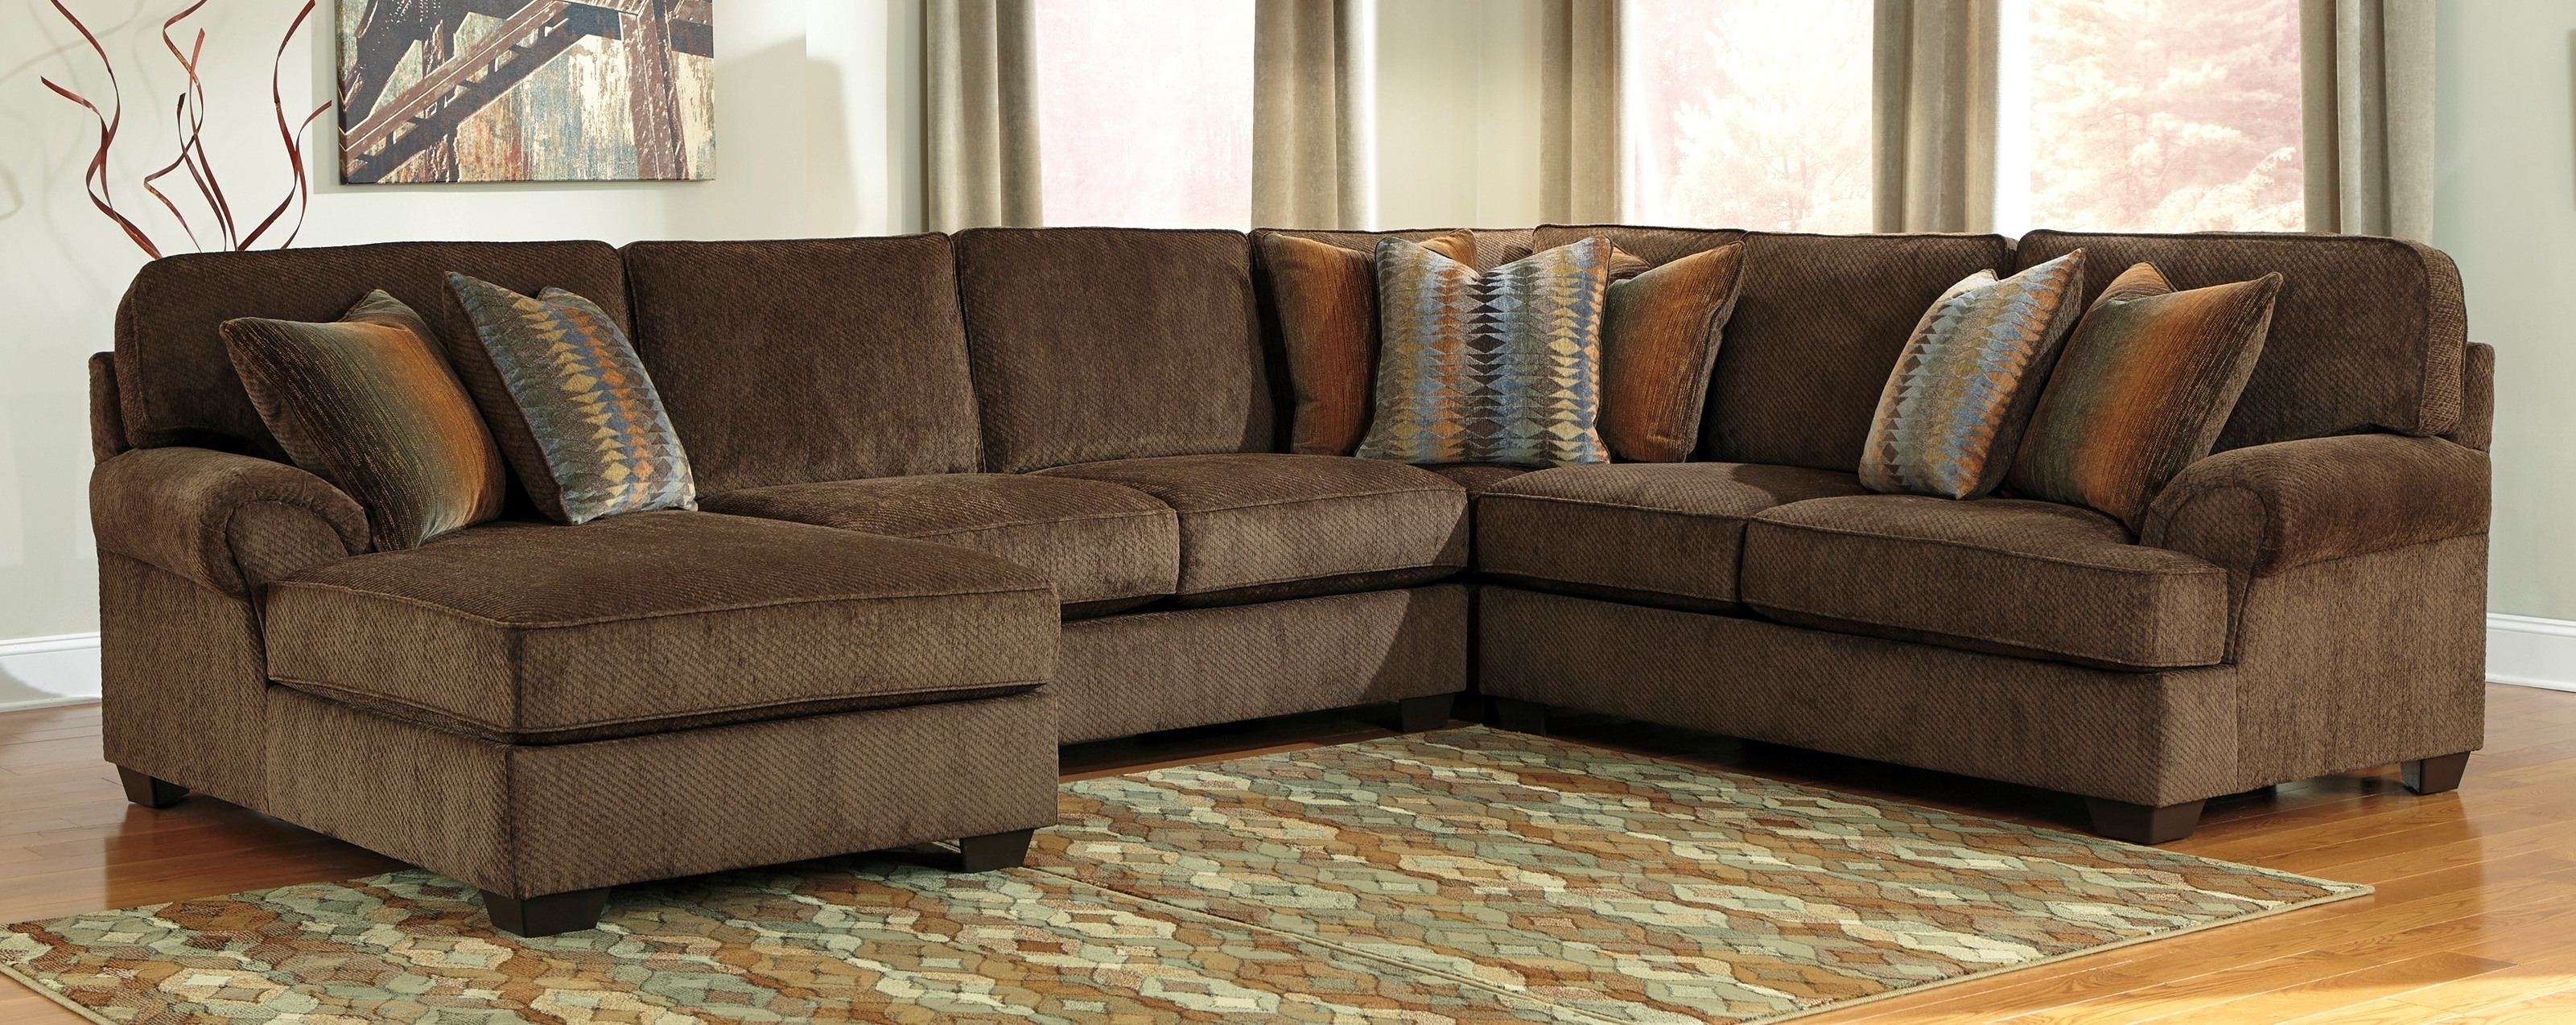 Well Known Ashley Sofa Chaises With Regard To Buy Ashley Furniture 9171055 9171077 9171034 9171017 Denning (View 14 of 15)